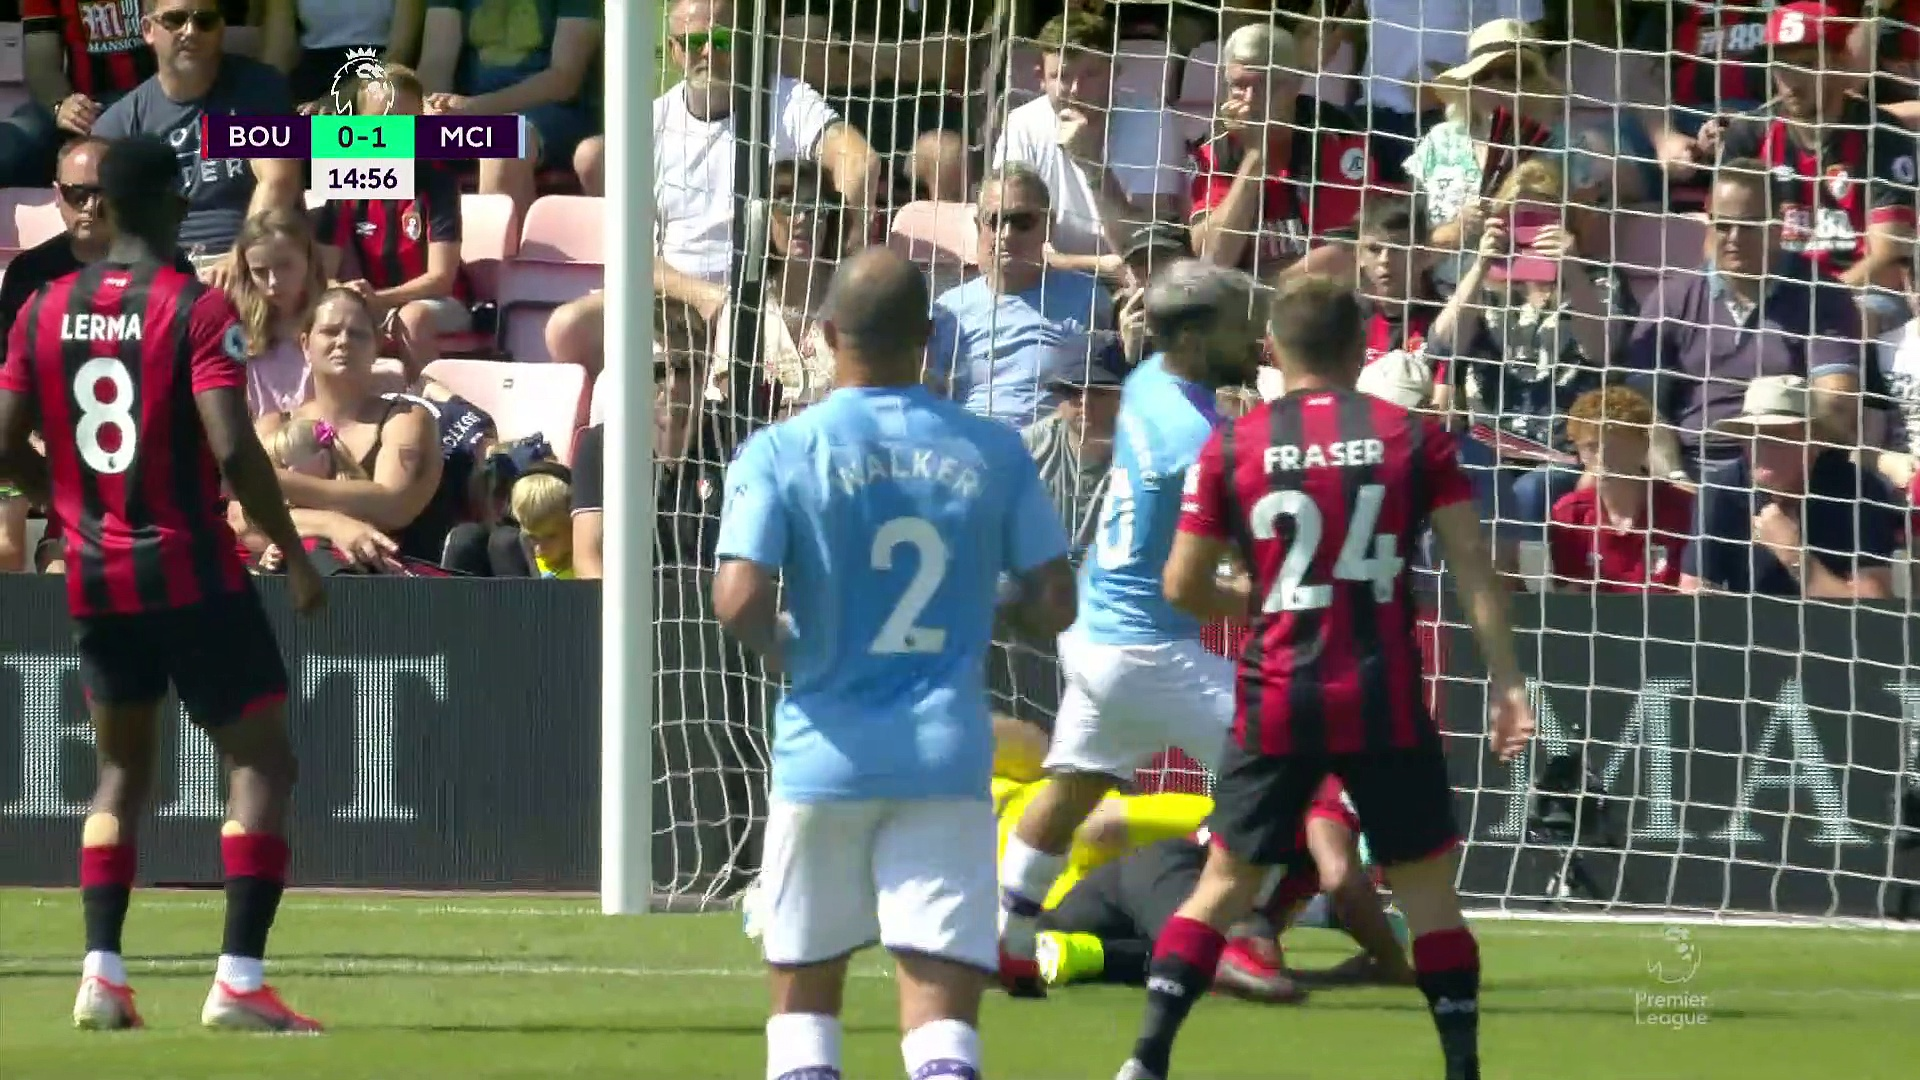 3. Hafta / Bournemouth - Manchester City : 1-3 (Özet)